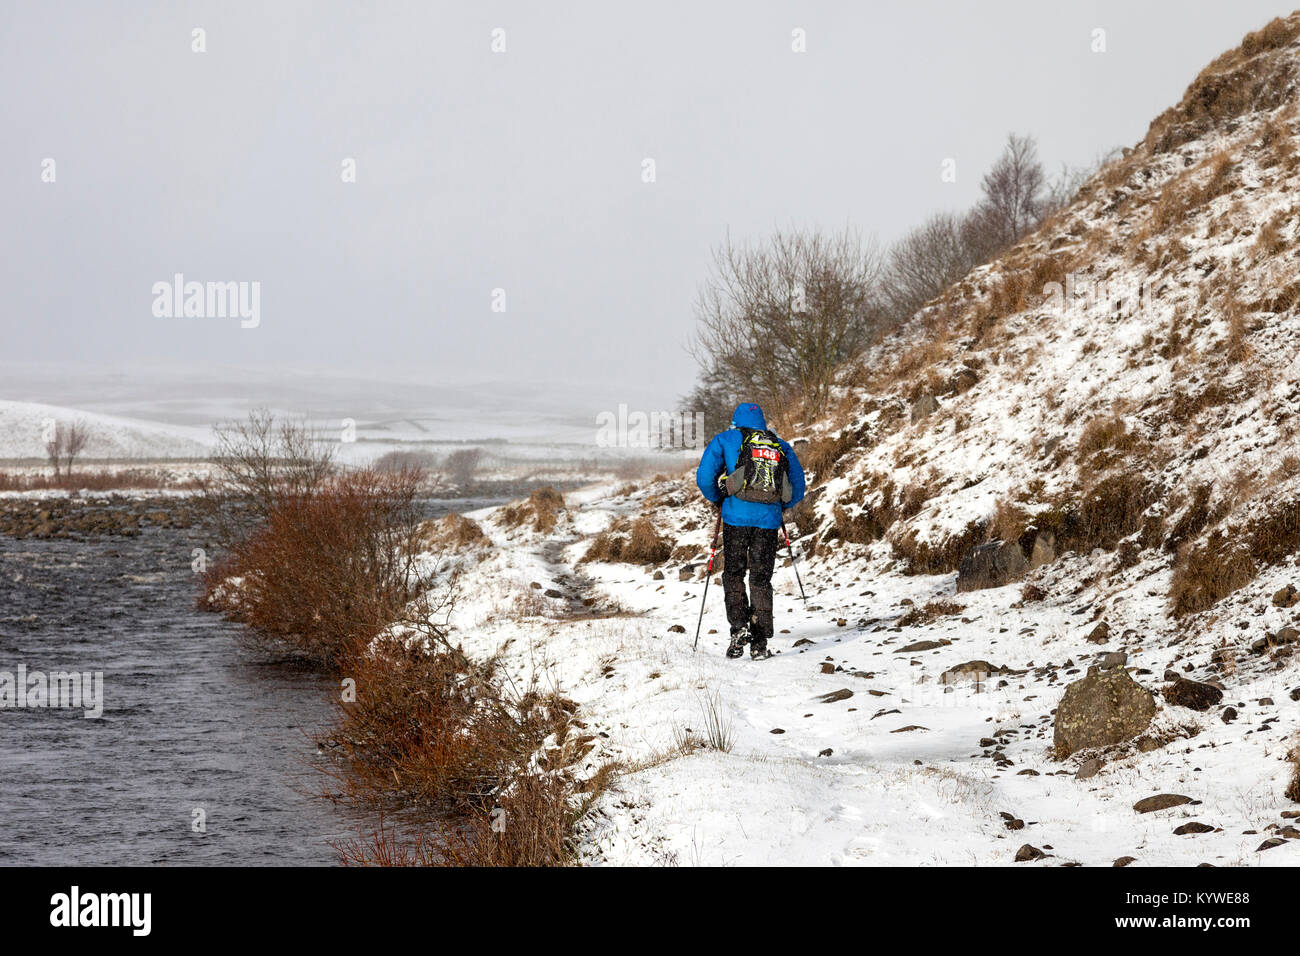 Upper Teesdale, County Durham UK. Tuesday 16th January 2018. Competitor 148 Simon Gfeller faced some tough winter - Stock Image